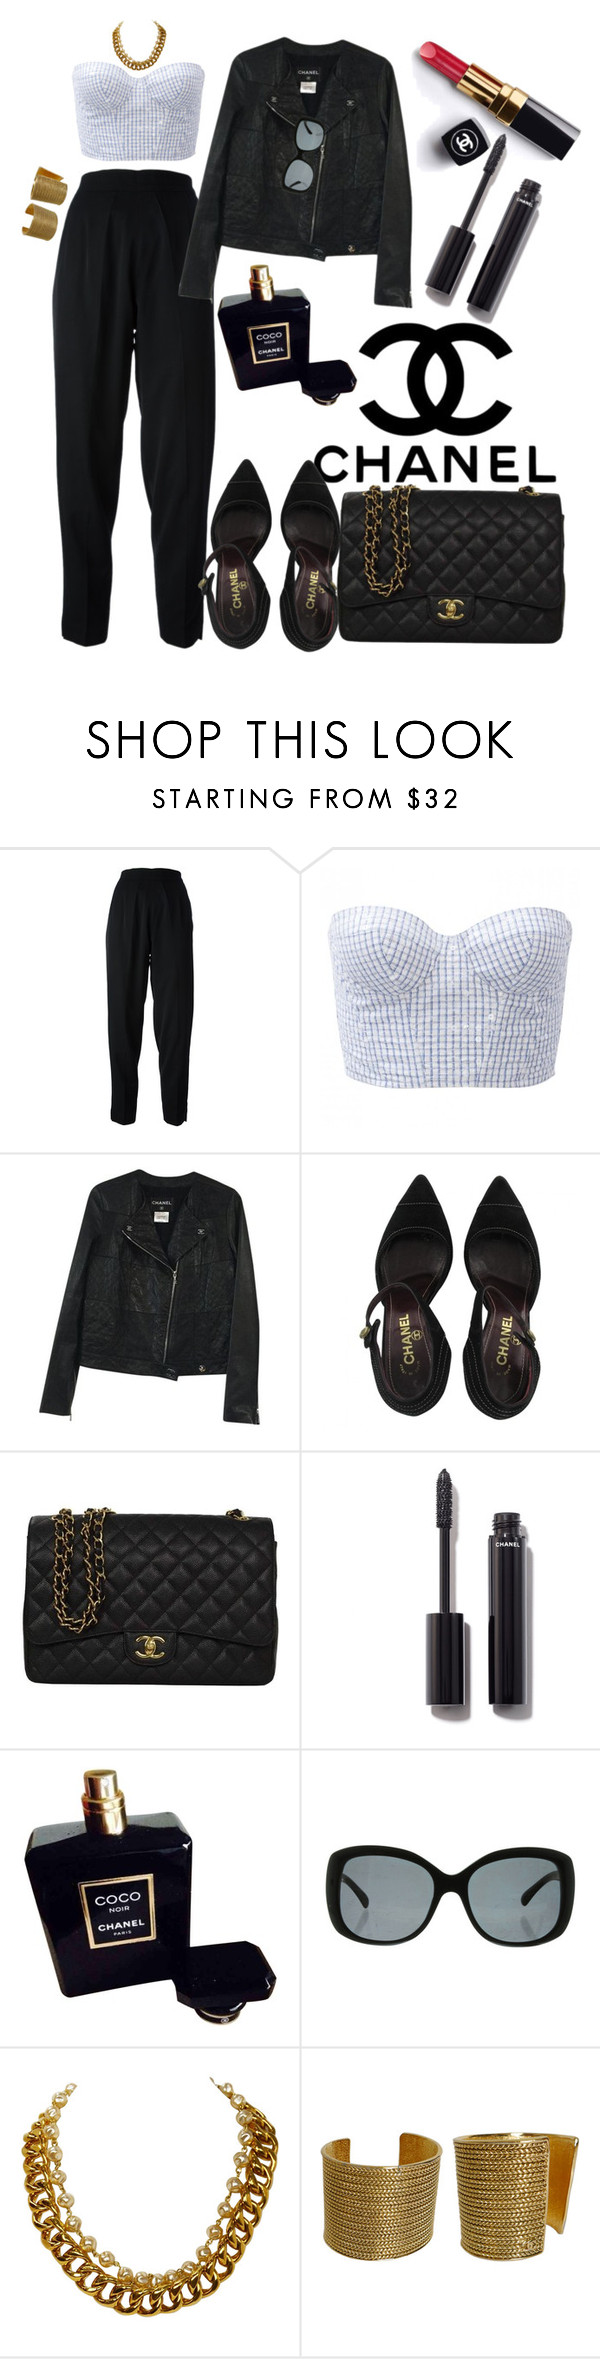 """Chanel"" by saraprifti ❤ liked on Polyvore featuring Chanel"